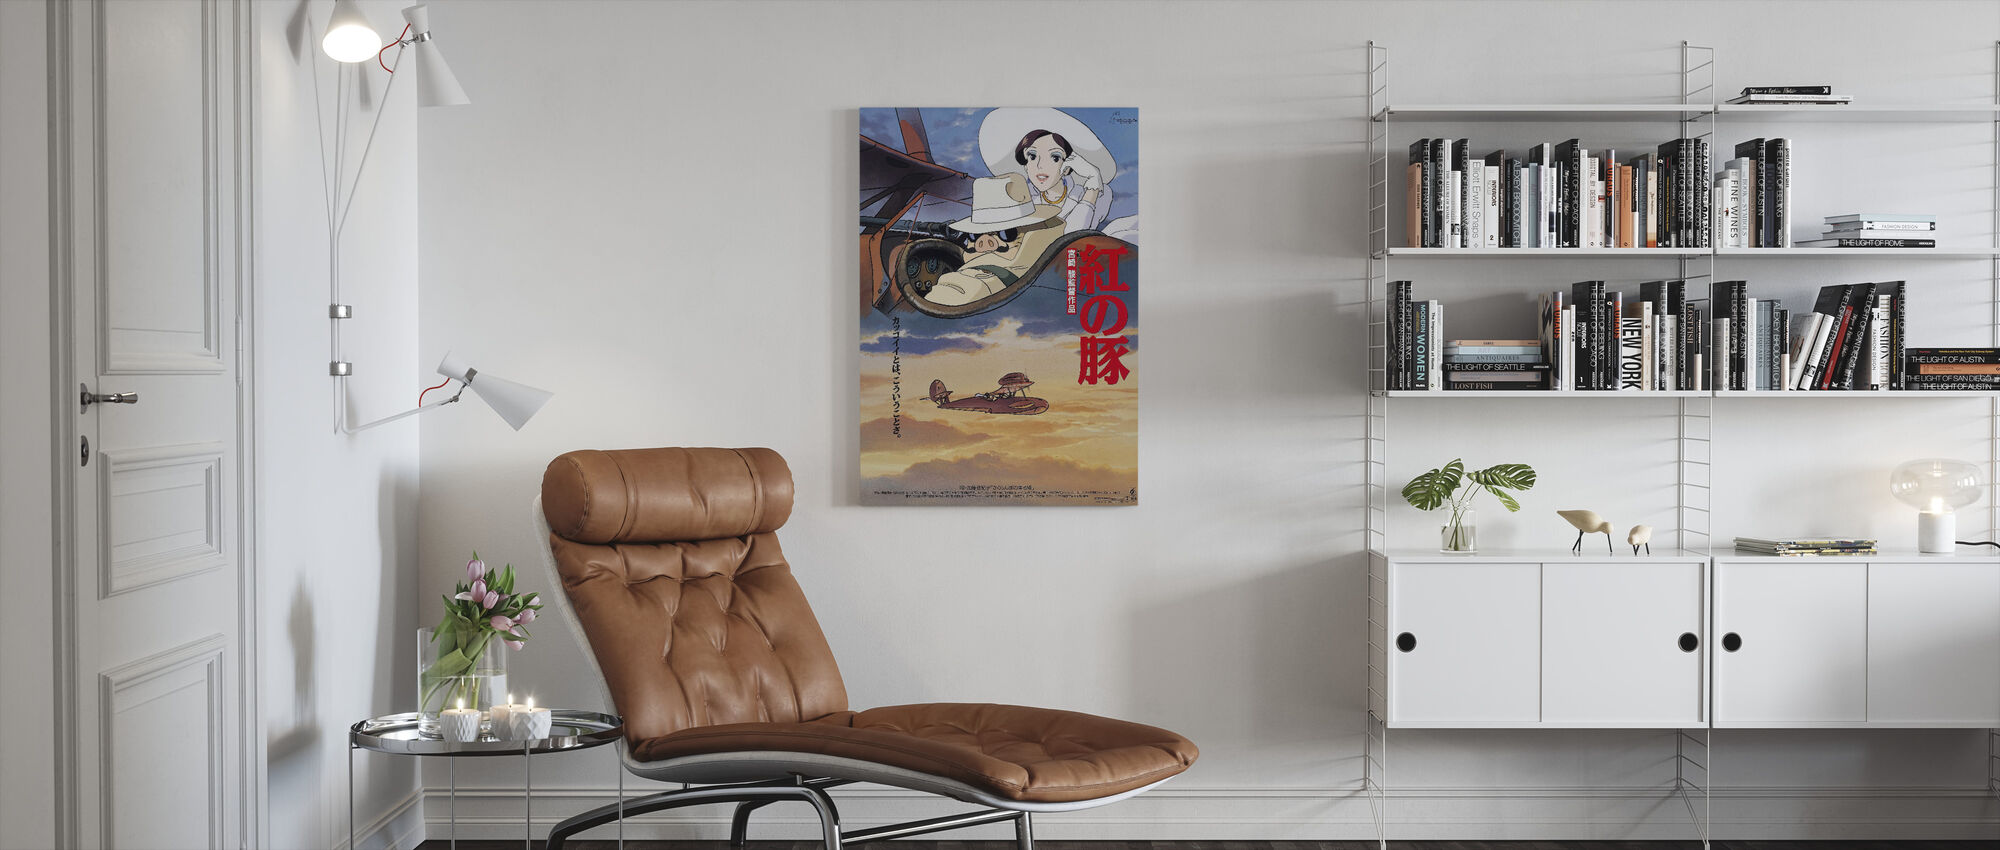 Crimson Pig - Canvas print - Living Room